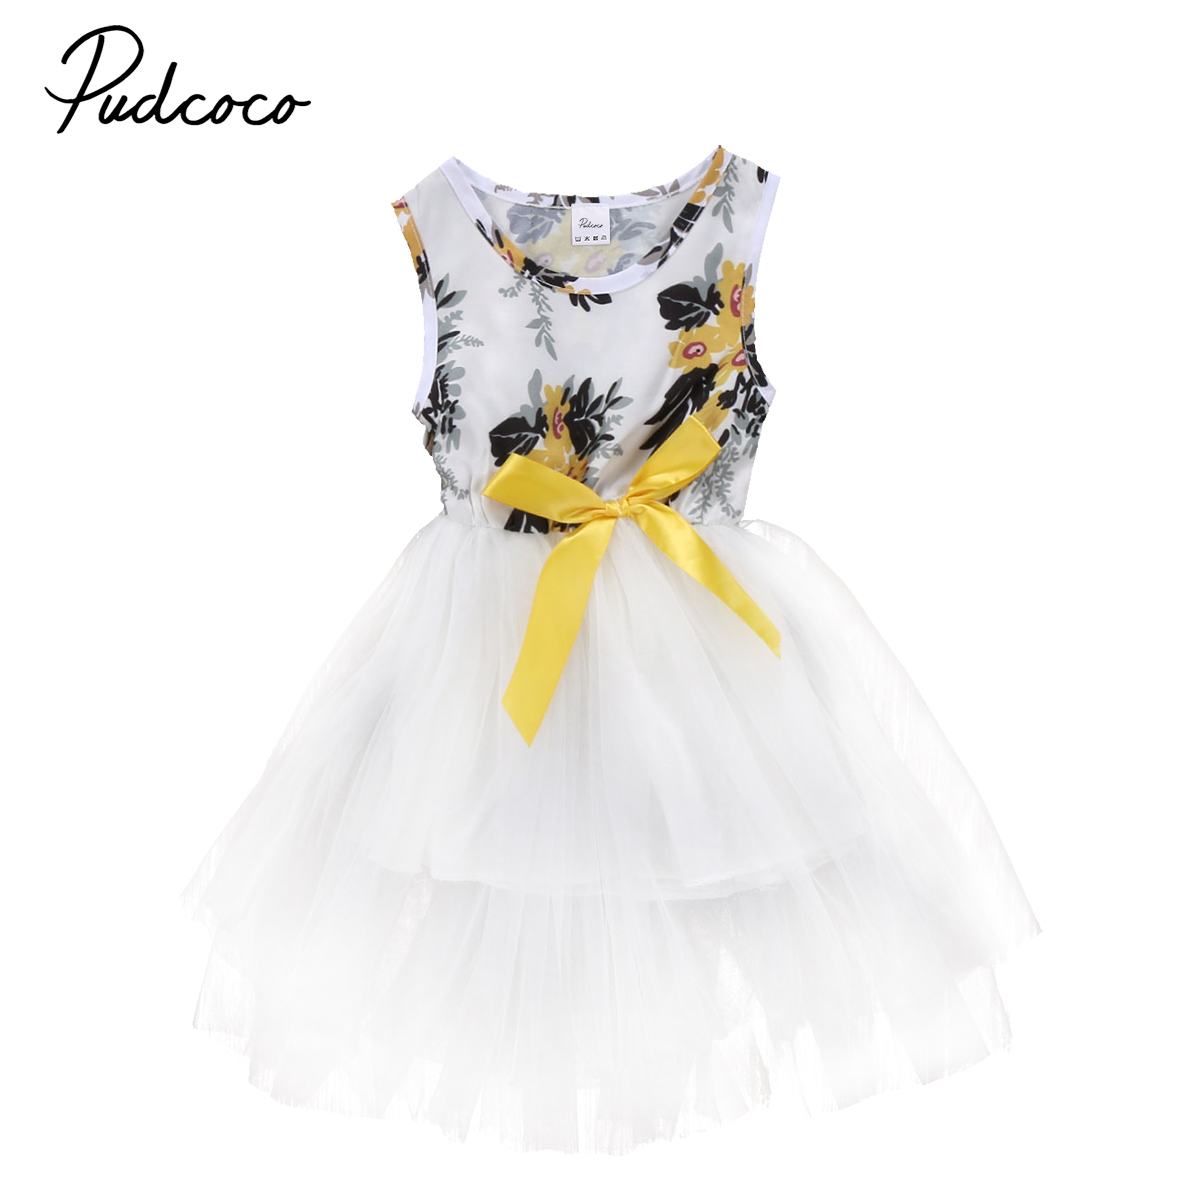 Fashion Summer Baby Girls Toddler Kids Sleeveless Bowknot Dresses Party Princess Wedding Tutu Tulle Ball Gown Flower Dress 0-5T kids girls bridesmaid wedding toddler baby girl princess dress sleeveless sequin flower prom party ball gown formal party xd24 c